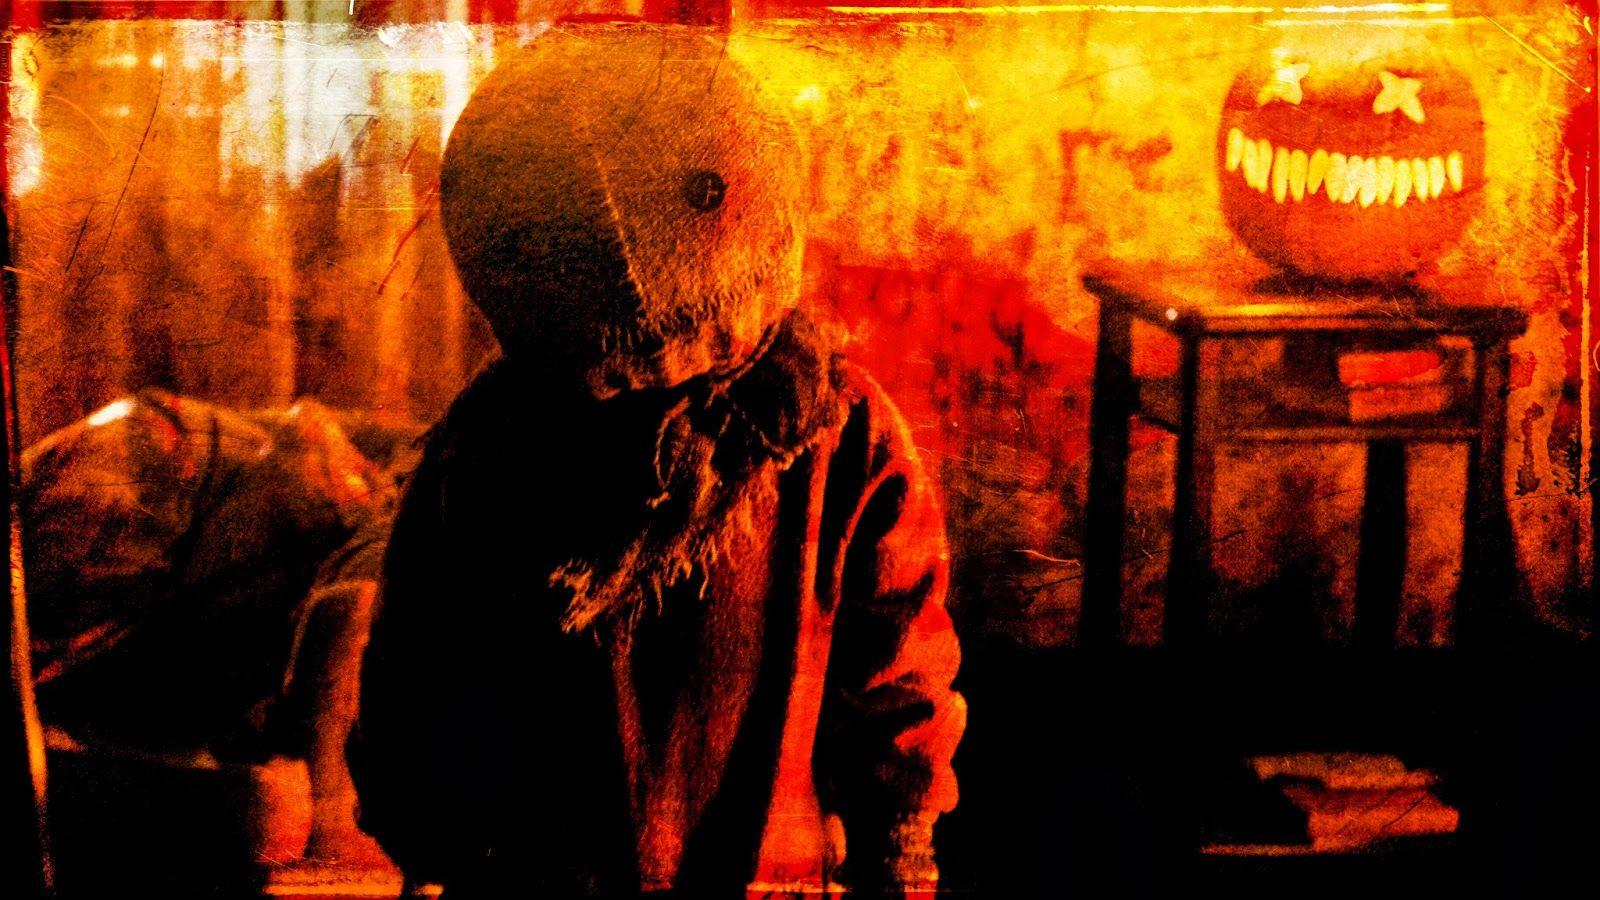 Trick 'r Treat: A Look Back At The Quintessential Halloween Film